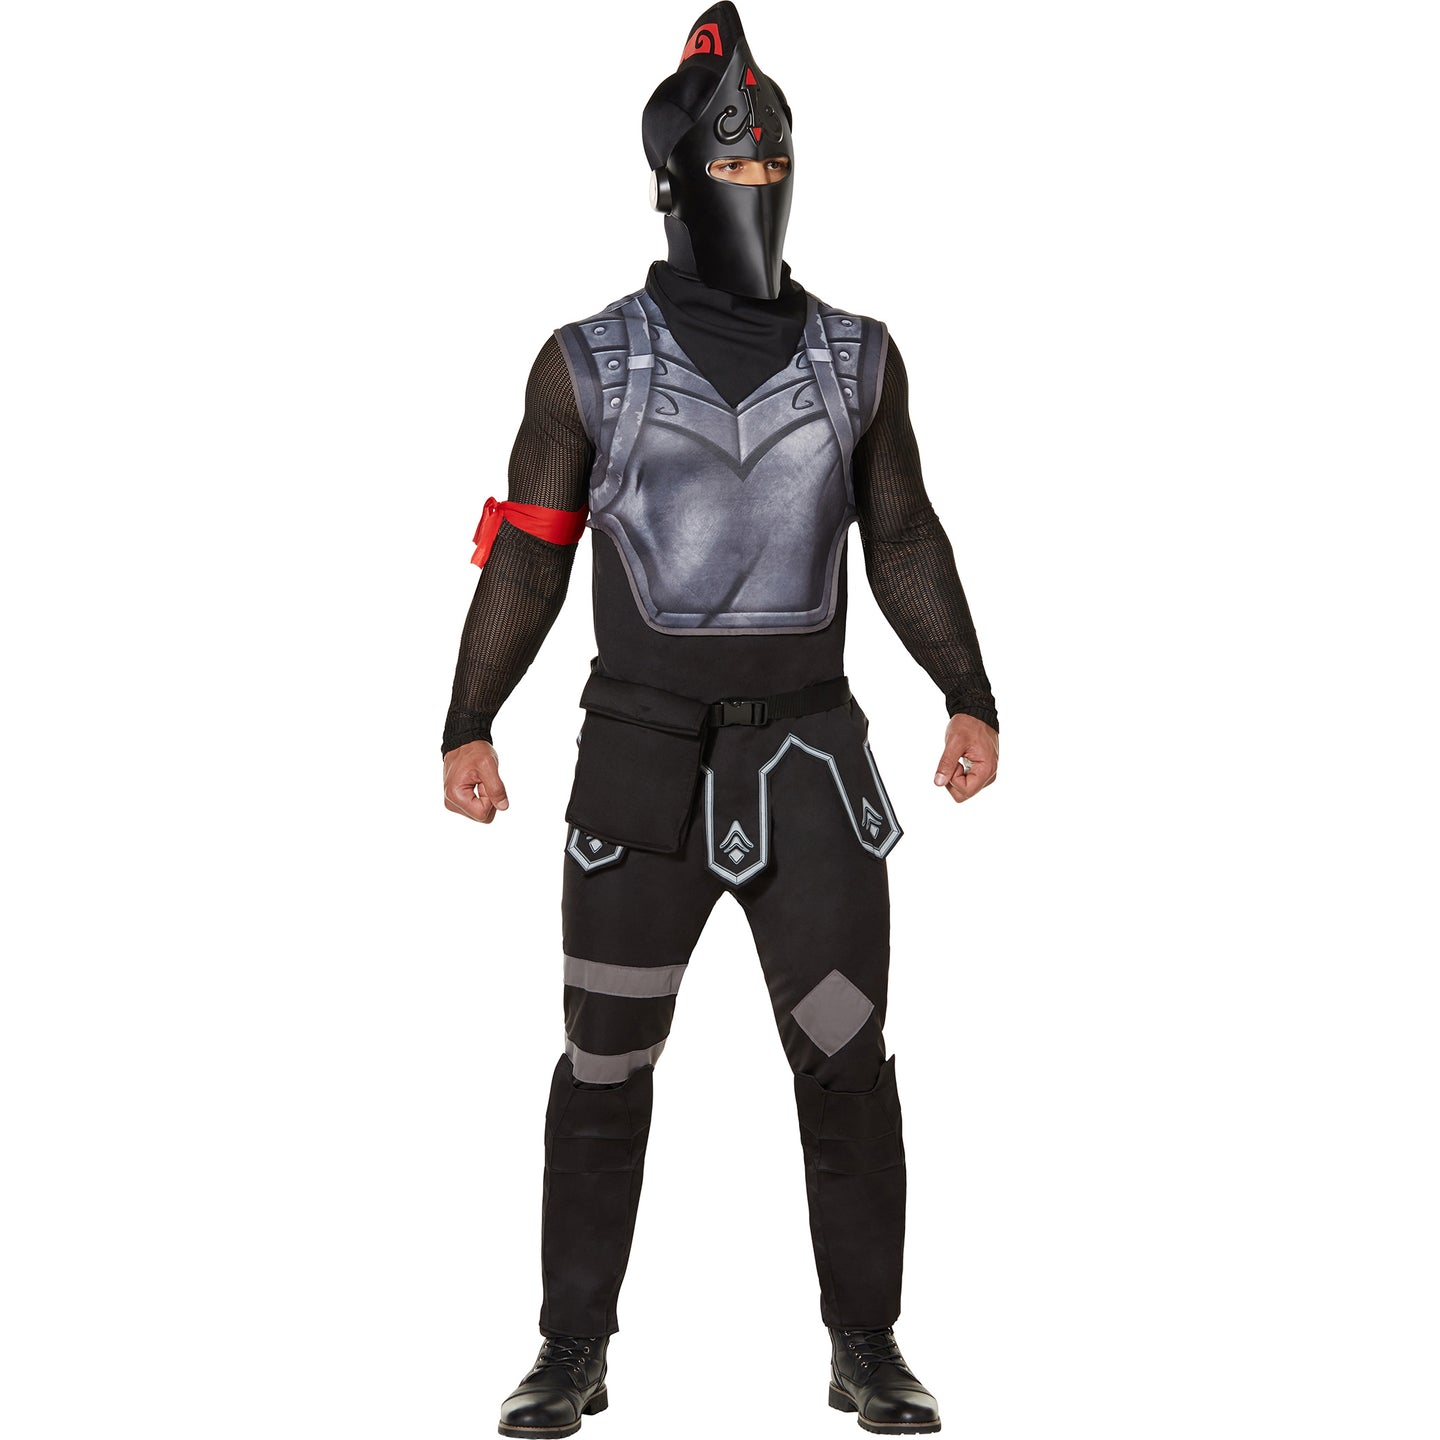 BLACK KNIGHT ADULT 104024